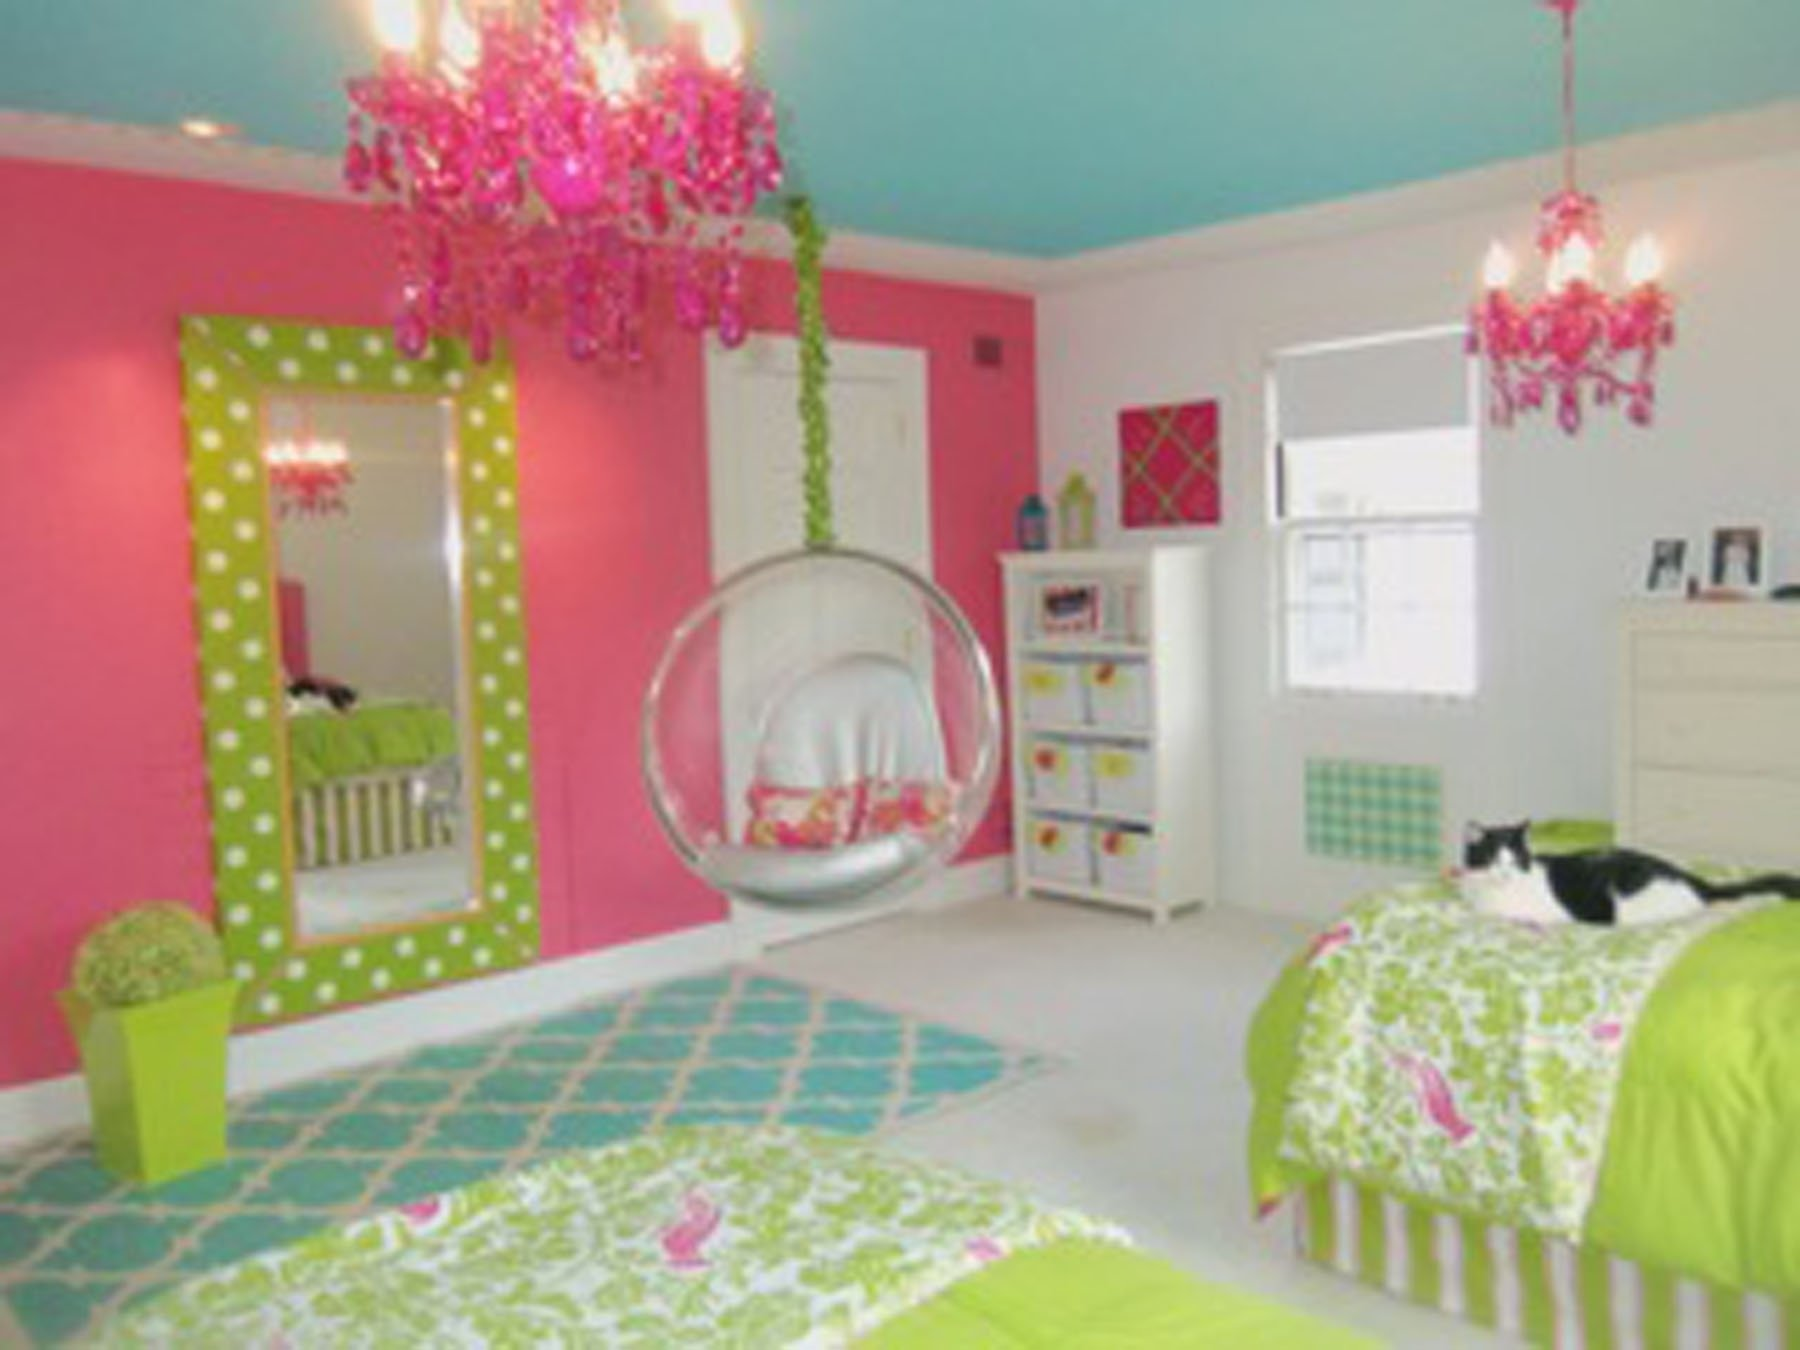 10 Great Room Decorating Ideas For Girls cool tween room decor ideas 0 fun teen anadolukardiyolderg 2020